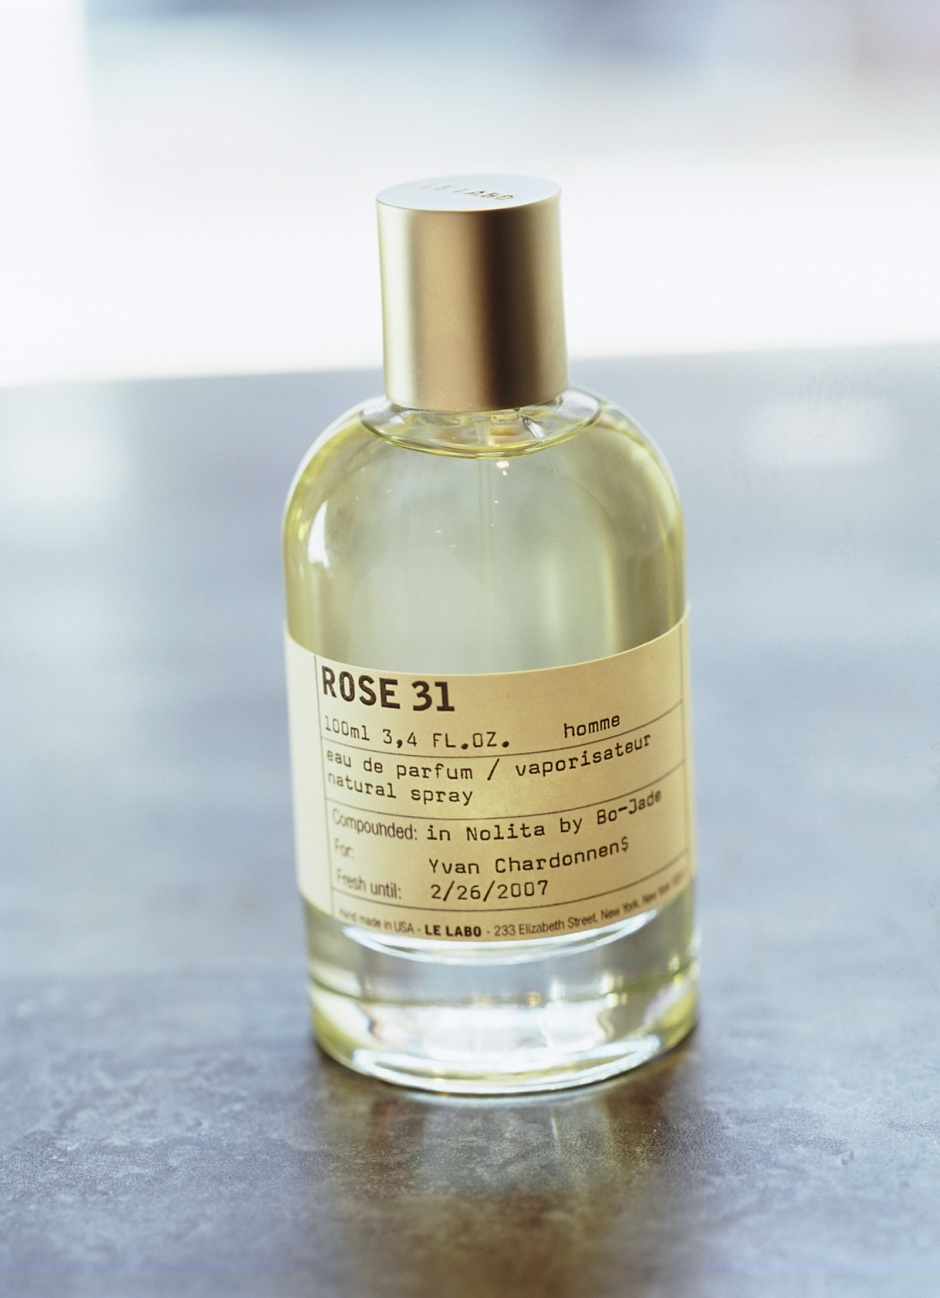 Le Labo Rose 31 Perfume Review